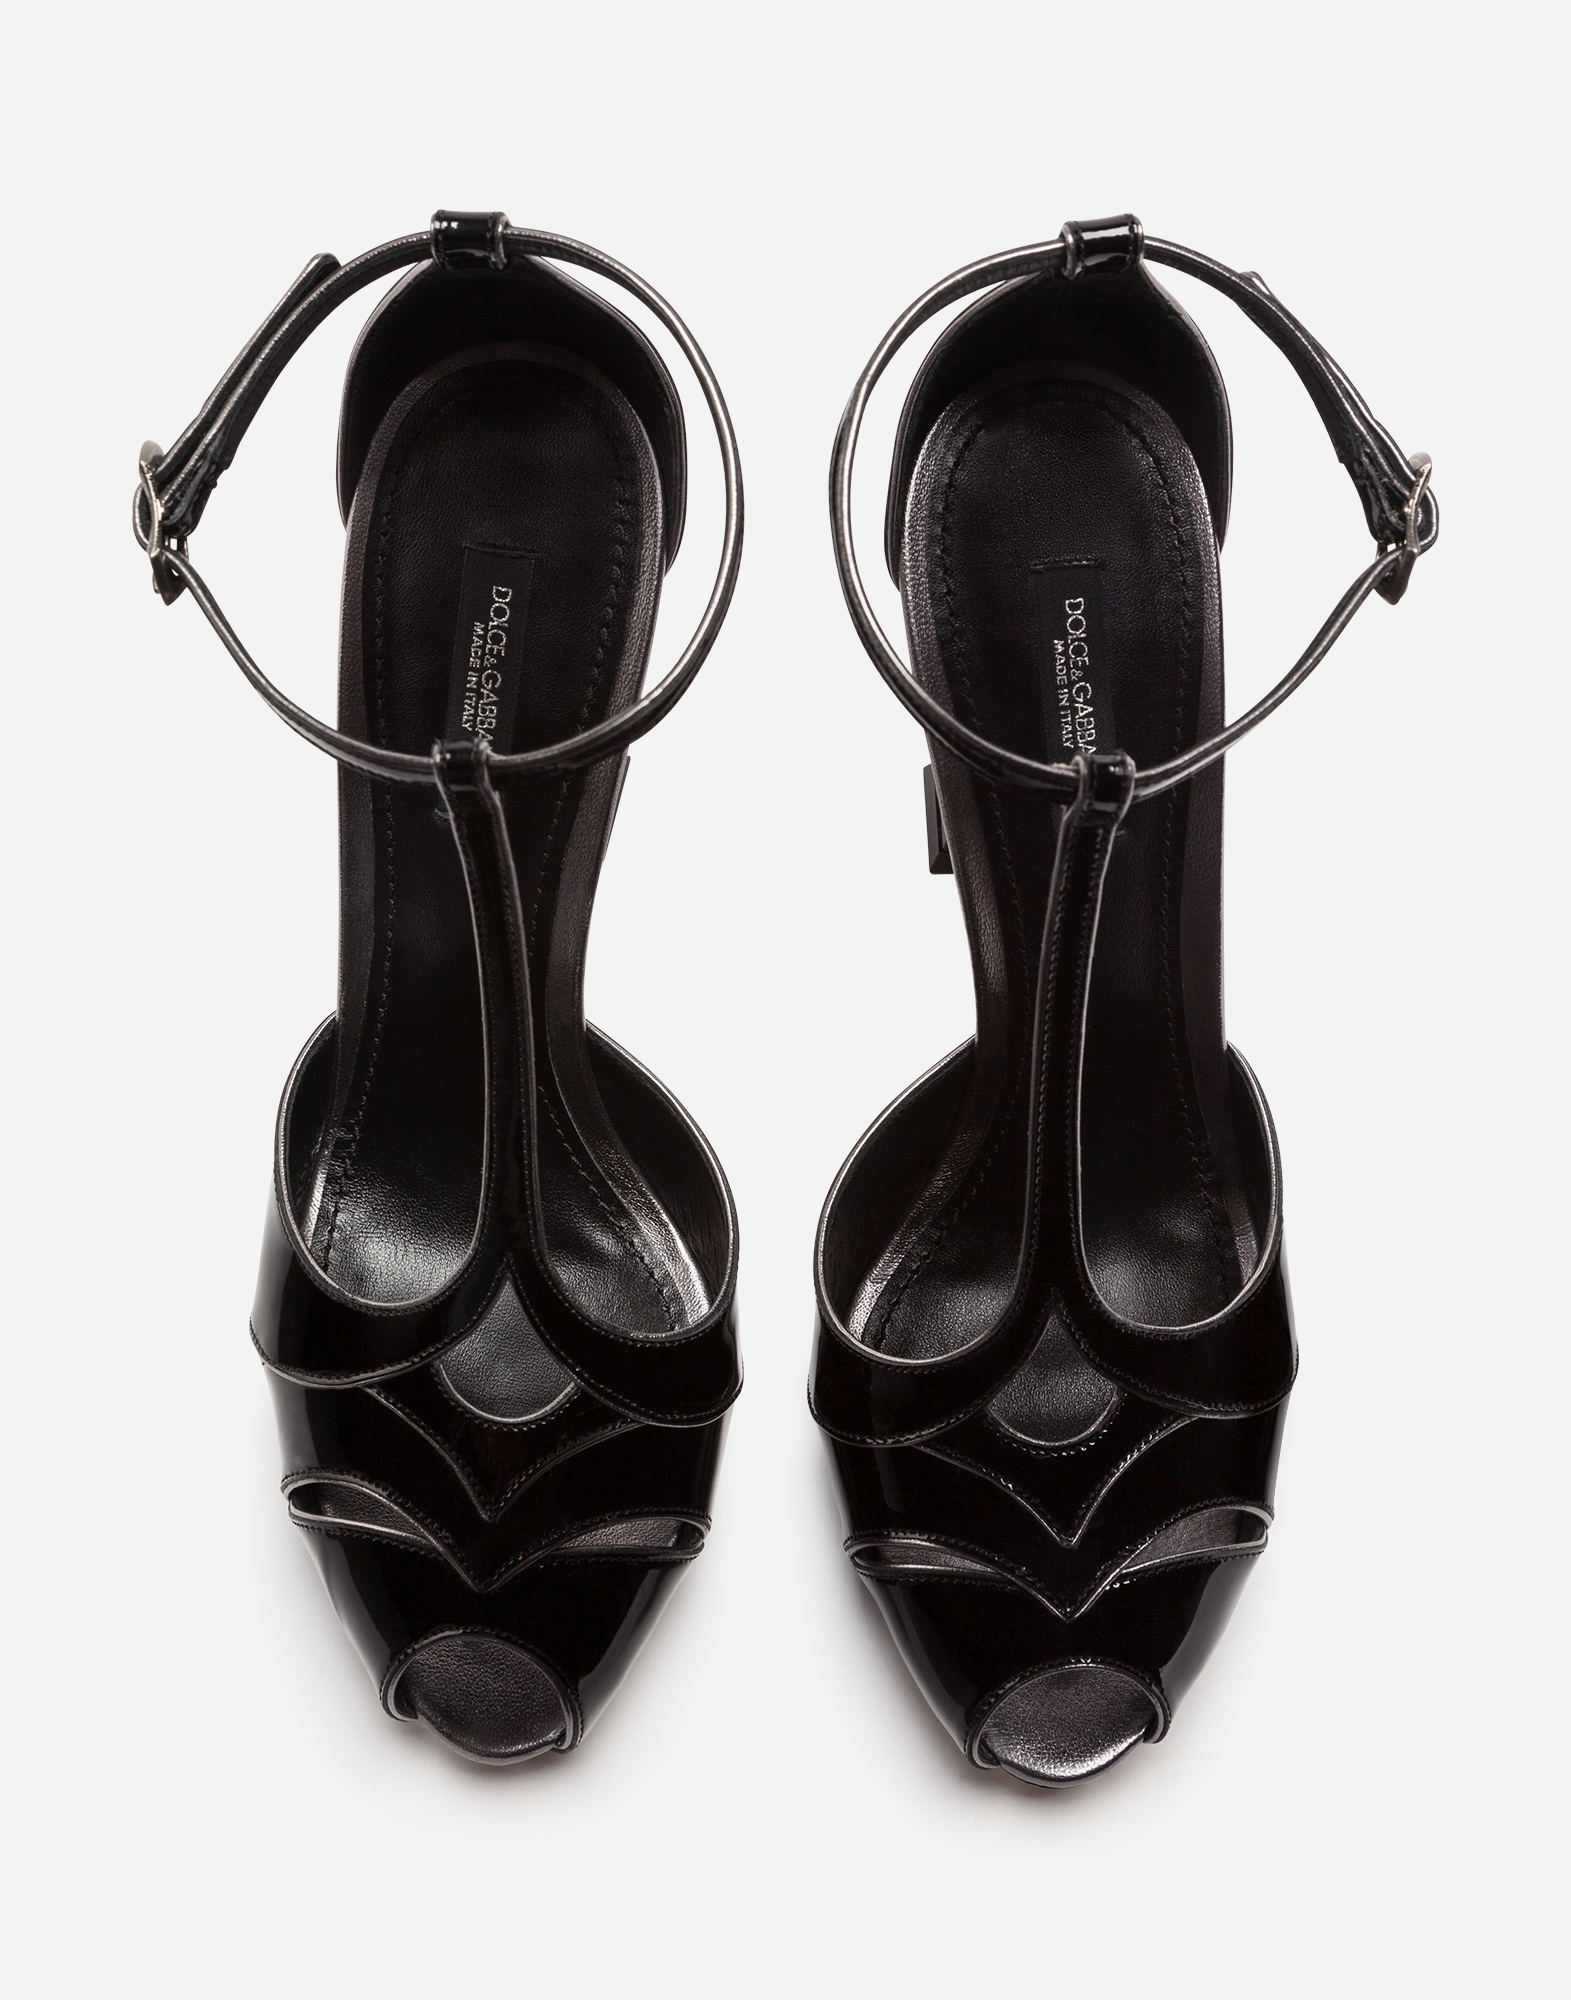 Dolce & Gabbana SANDALS IN VARNISH AND MORDORÉ NAPPA LEATHER WITH SCULPTED HEEL